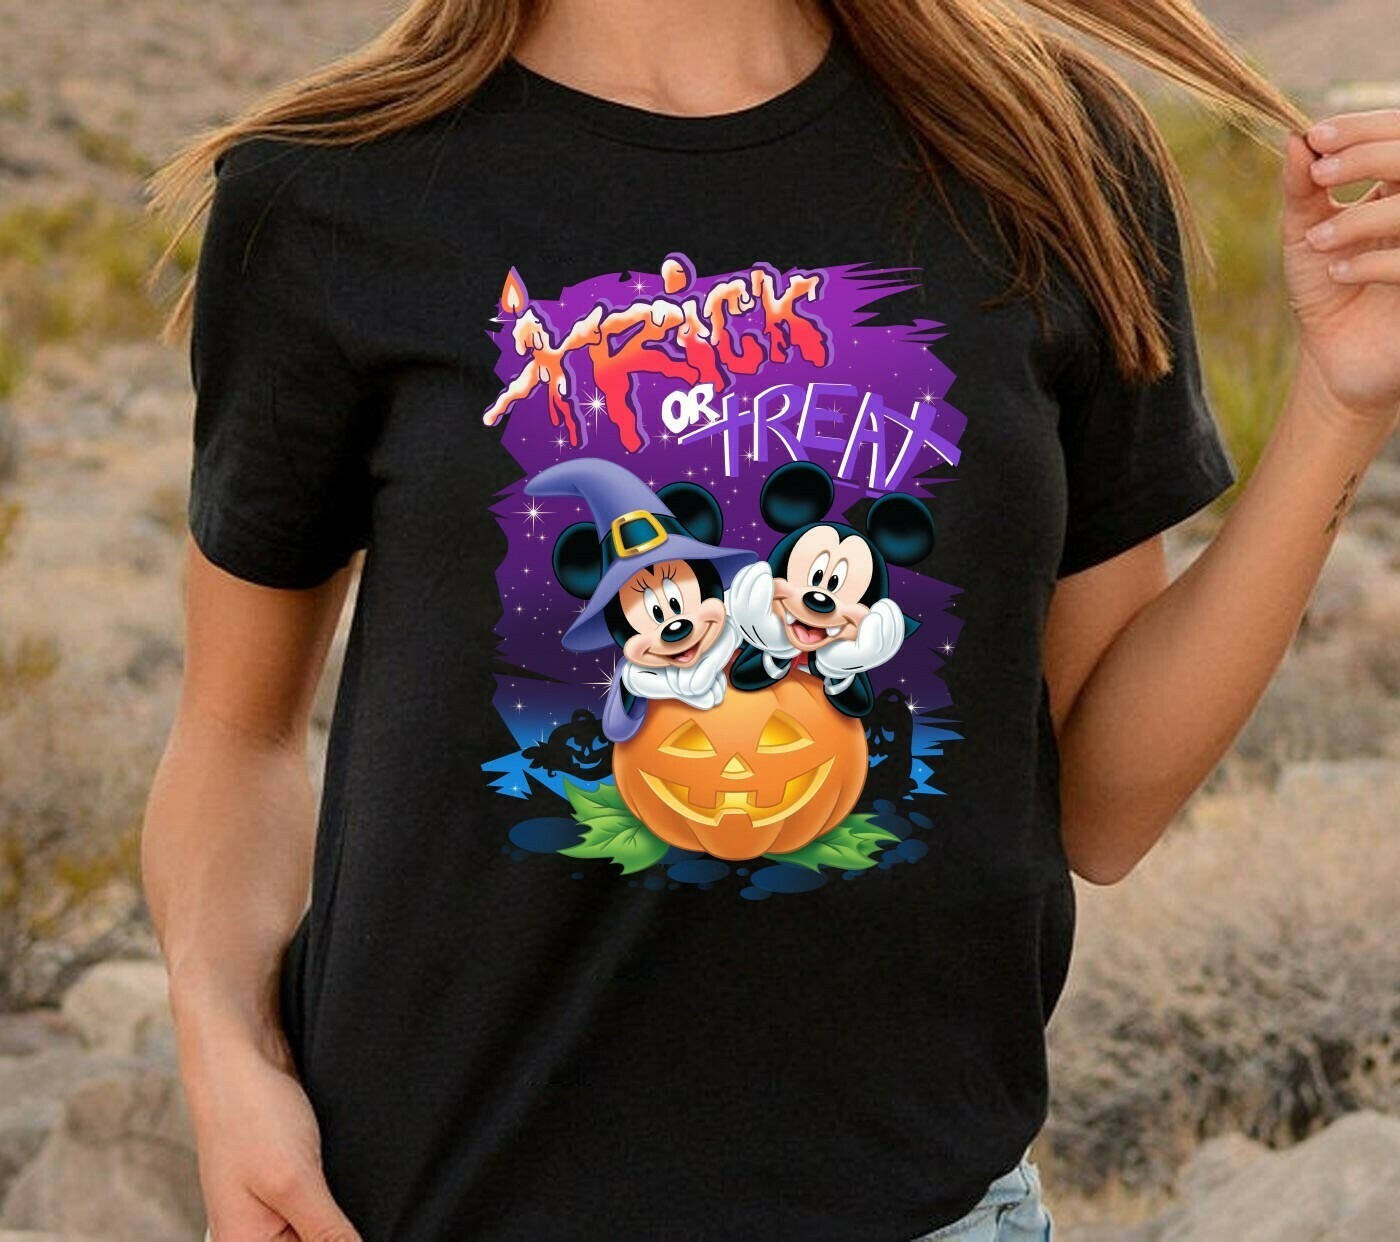 Mickey Minnie Trick Or Treat Disney Halloween Castle I'm going to Walt Disney Vacation Family Let's Go to Disney World Disneyland T Shirt Long Sleeve Sweatshirt Hoodie Jolly Family Gifts